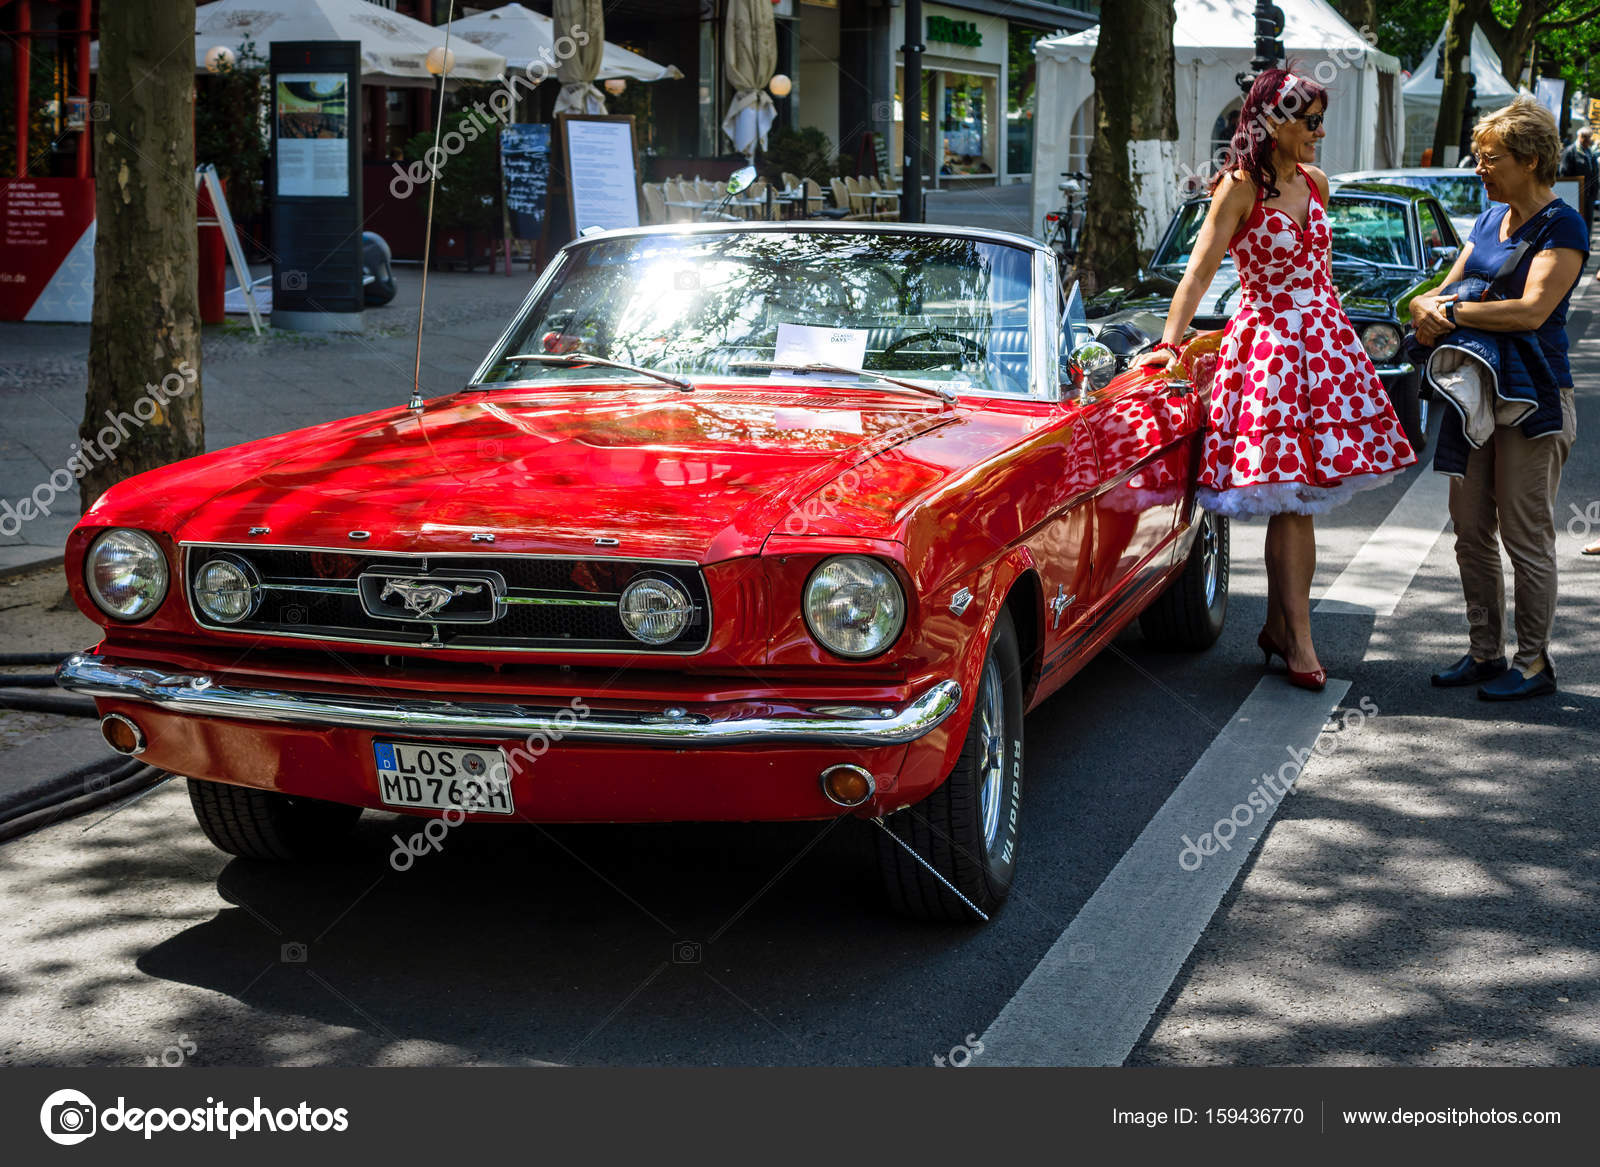 Berlin june 17 2017 muscle car ford mustang convertible 1965 and a woman in a 60s dress classic days berlin 2017 photo by s kohl